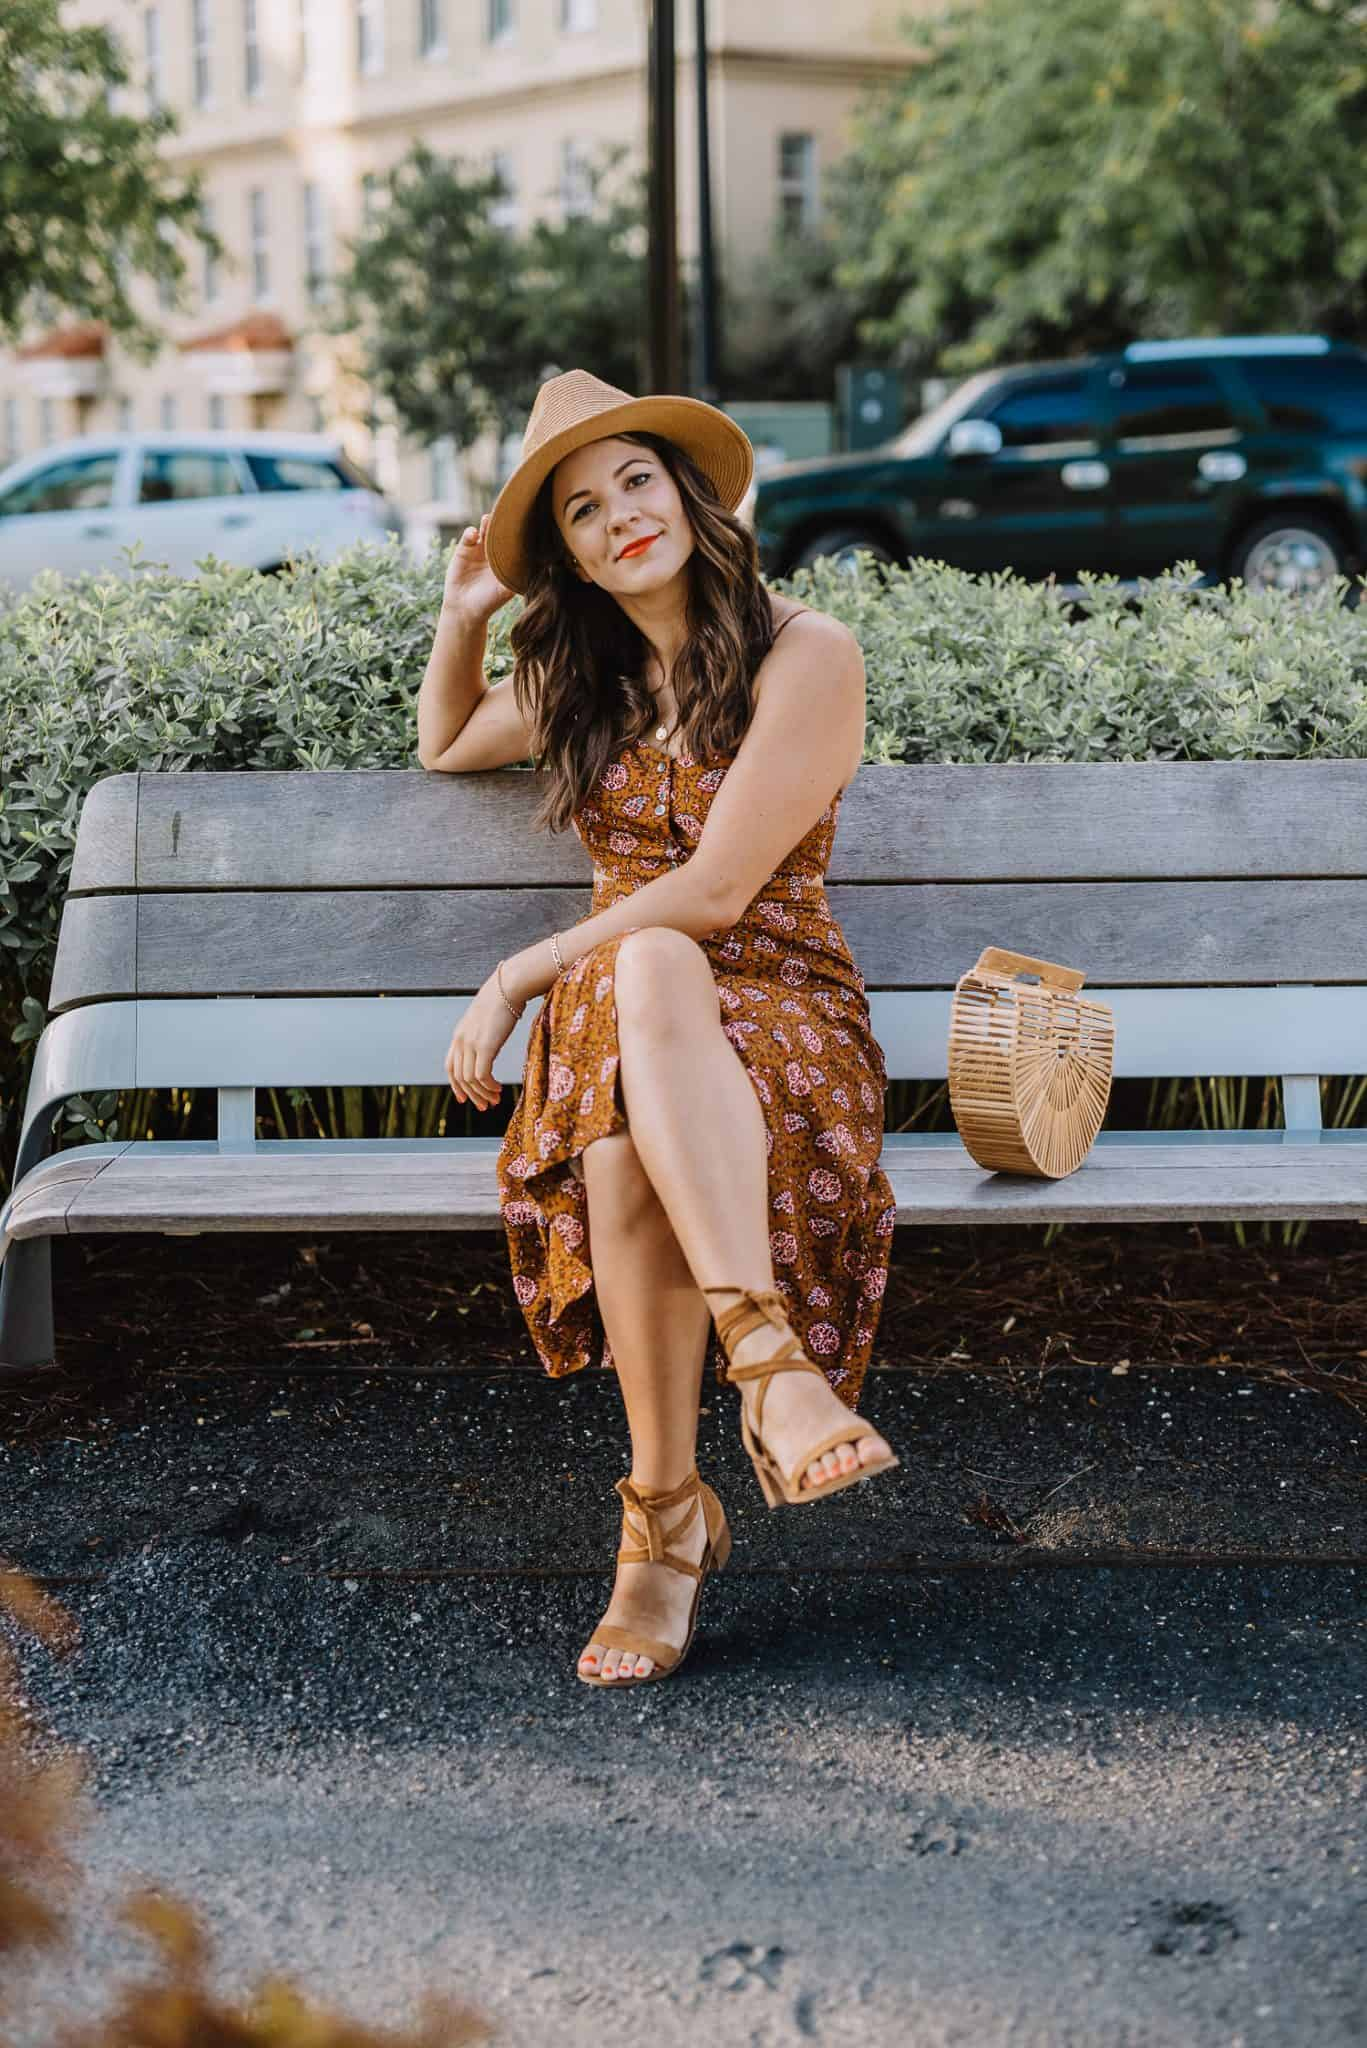 midi dress, summer outfit ideas - My Style Vita